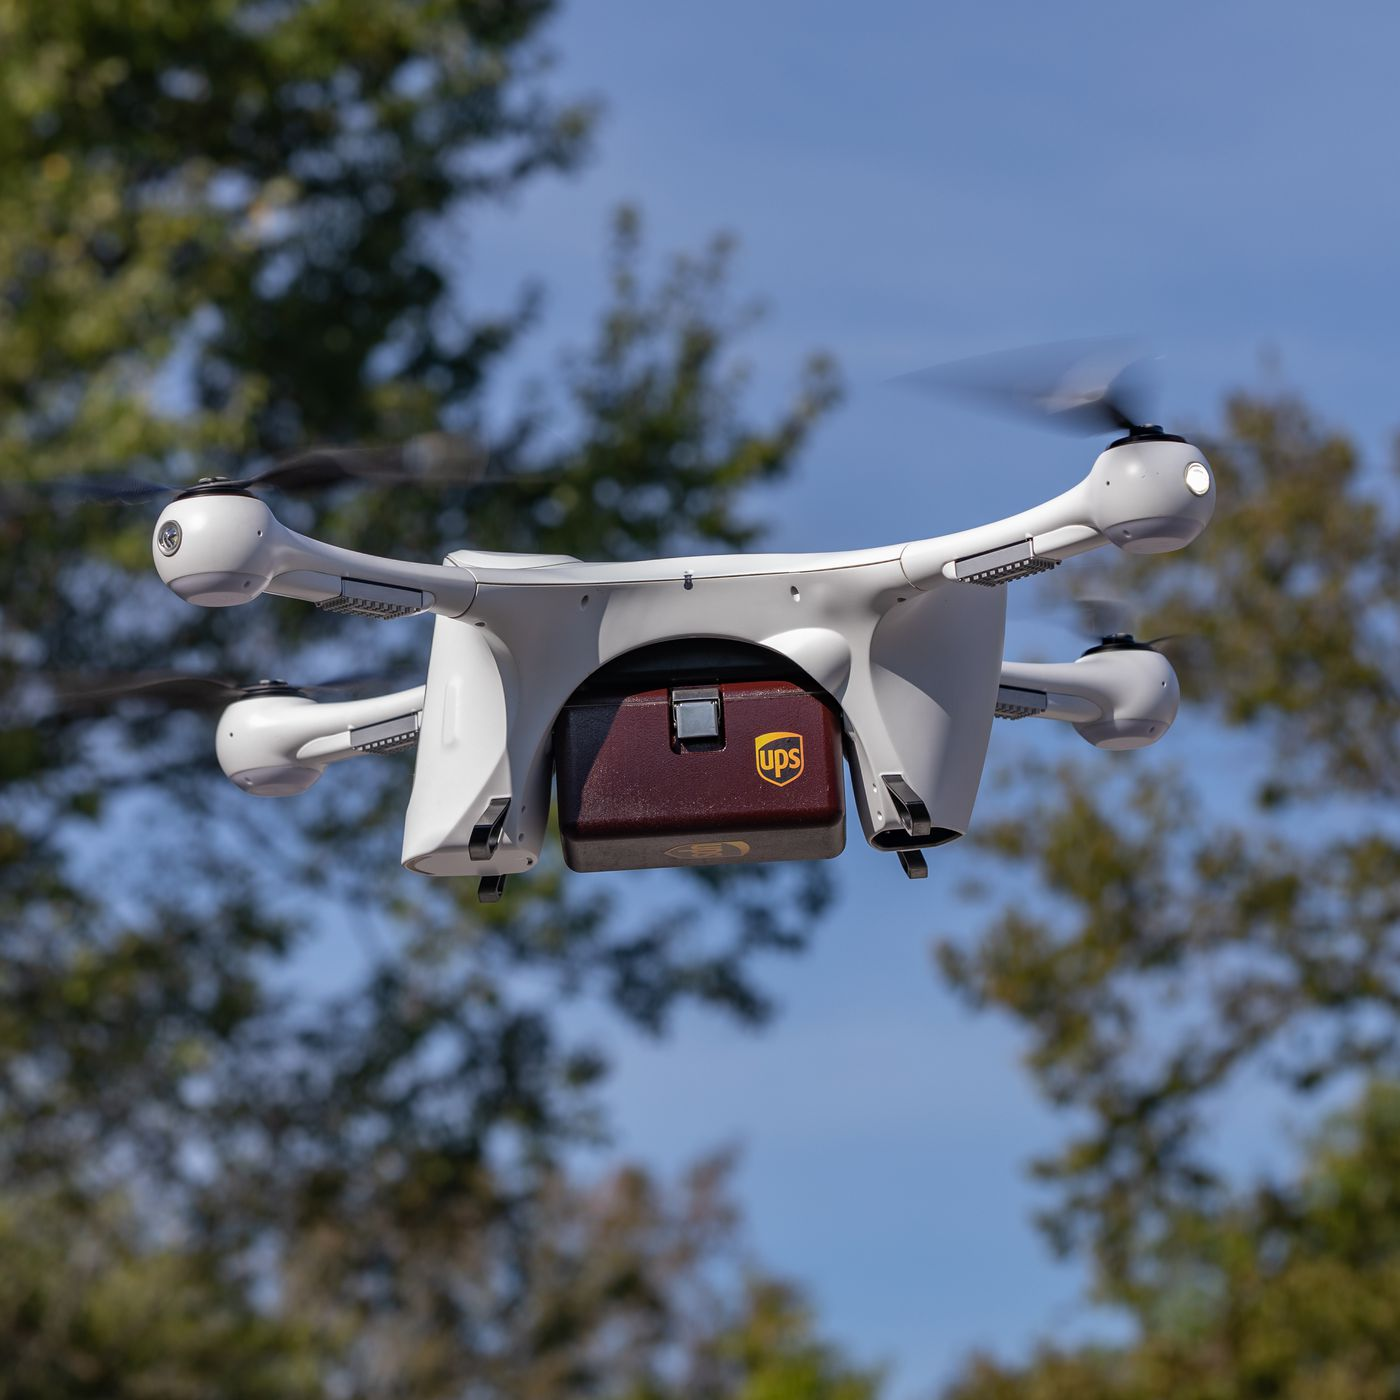 Ups Delivers Prescription Medications To Us Homes By Drone